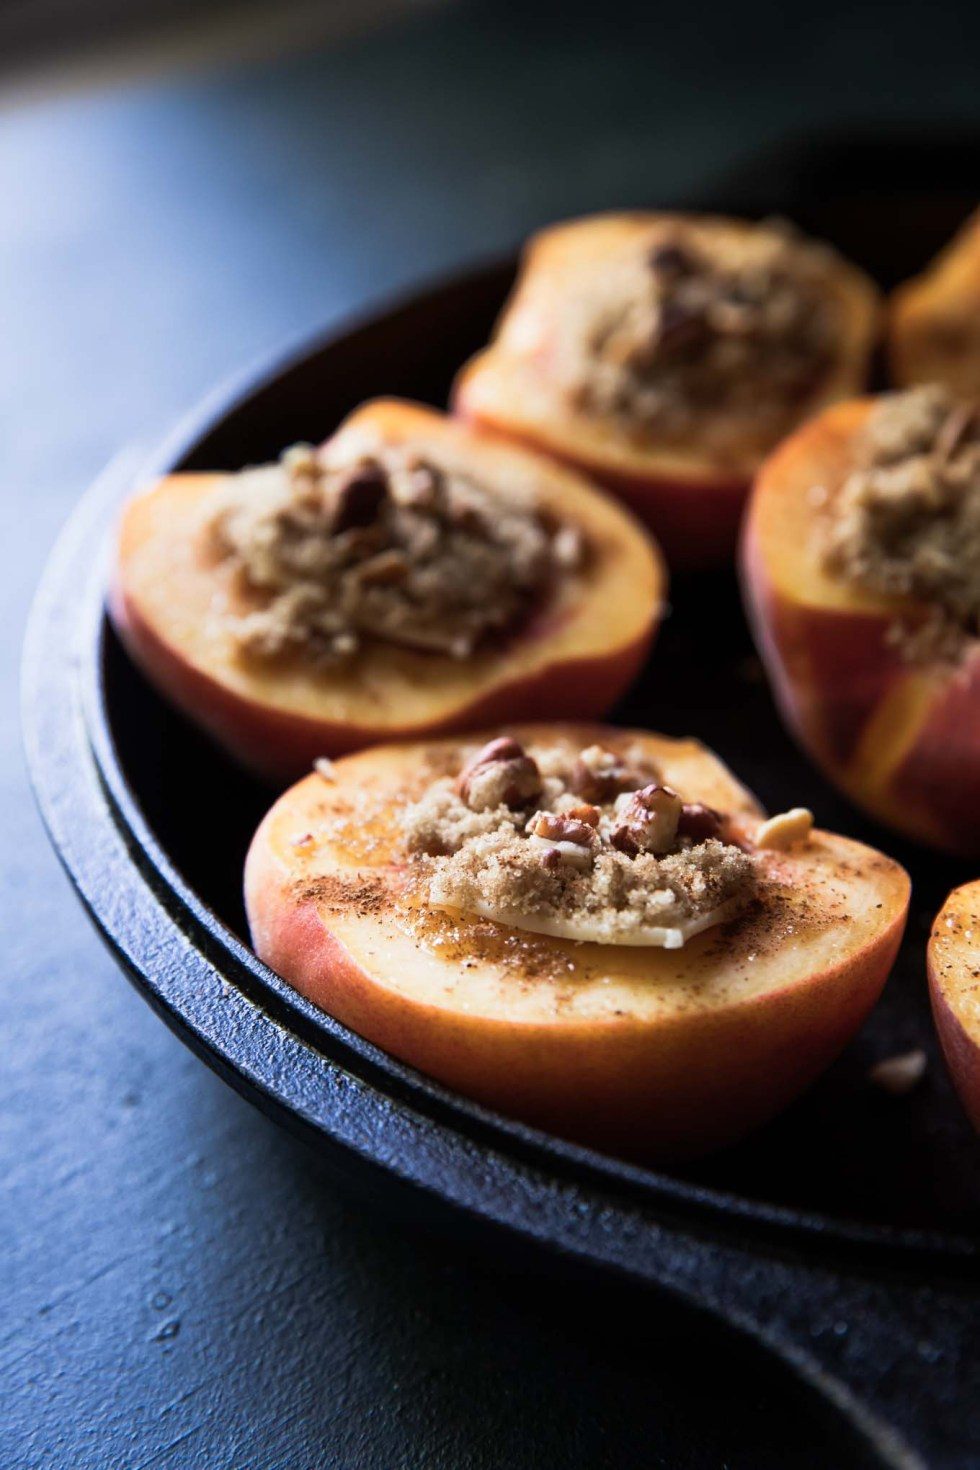 Peach halves topped with a sliver of butter and sprinkles of brown sugar and cinnamon.